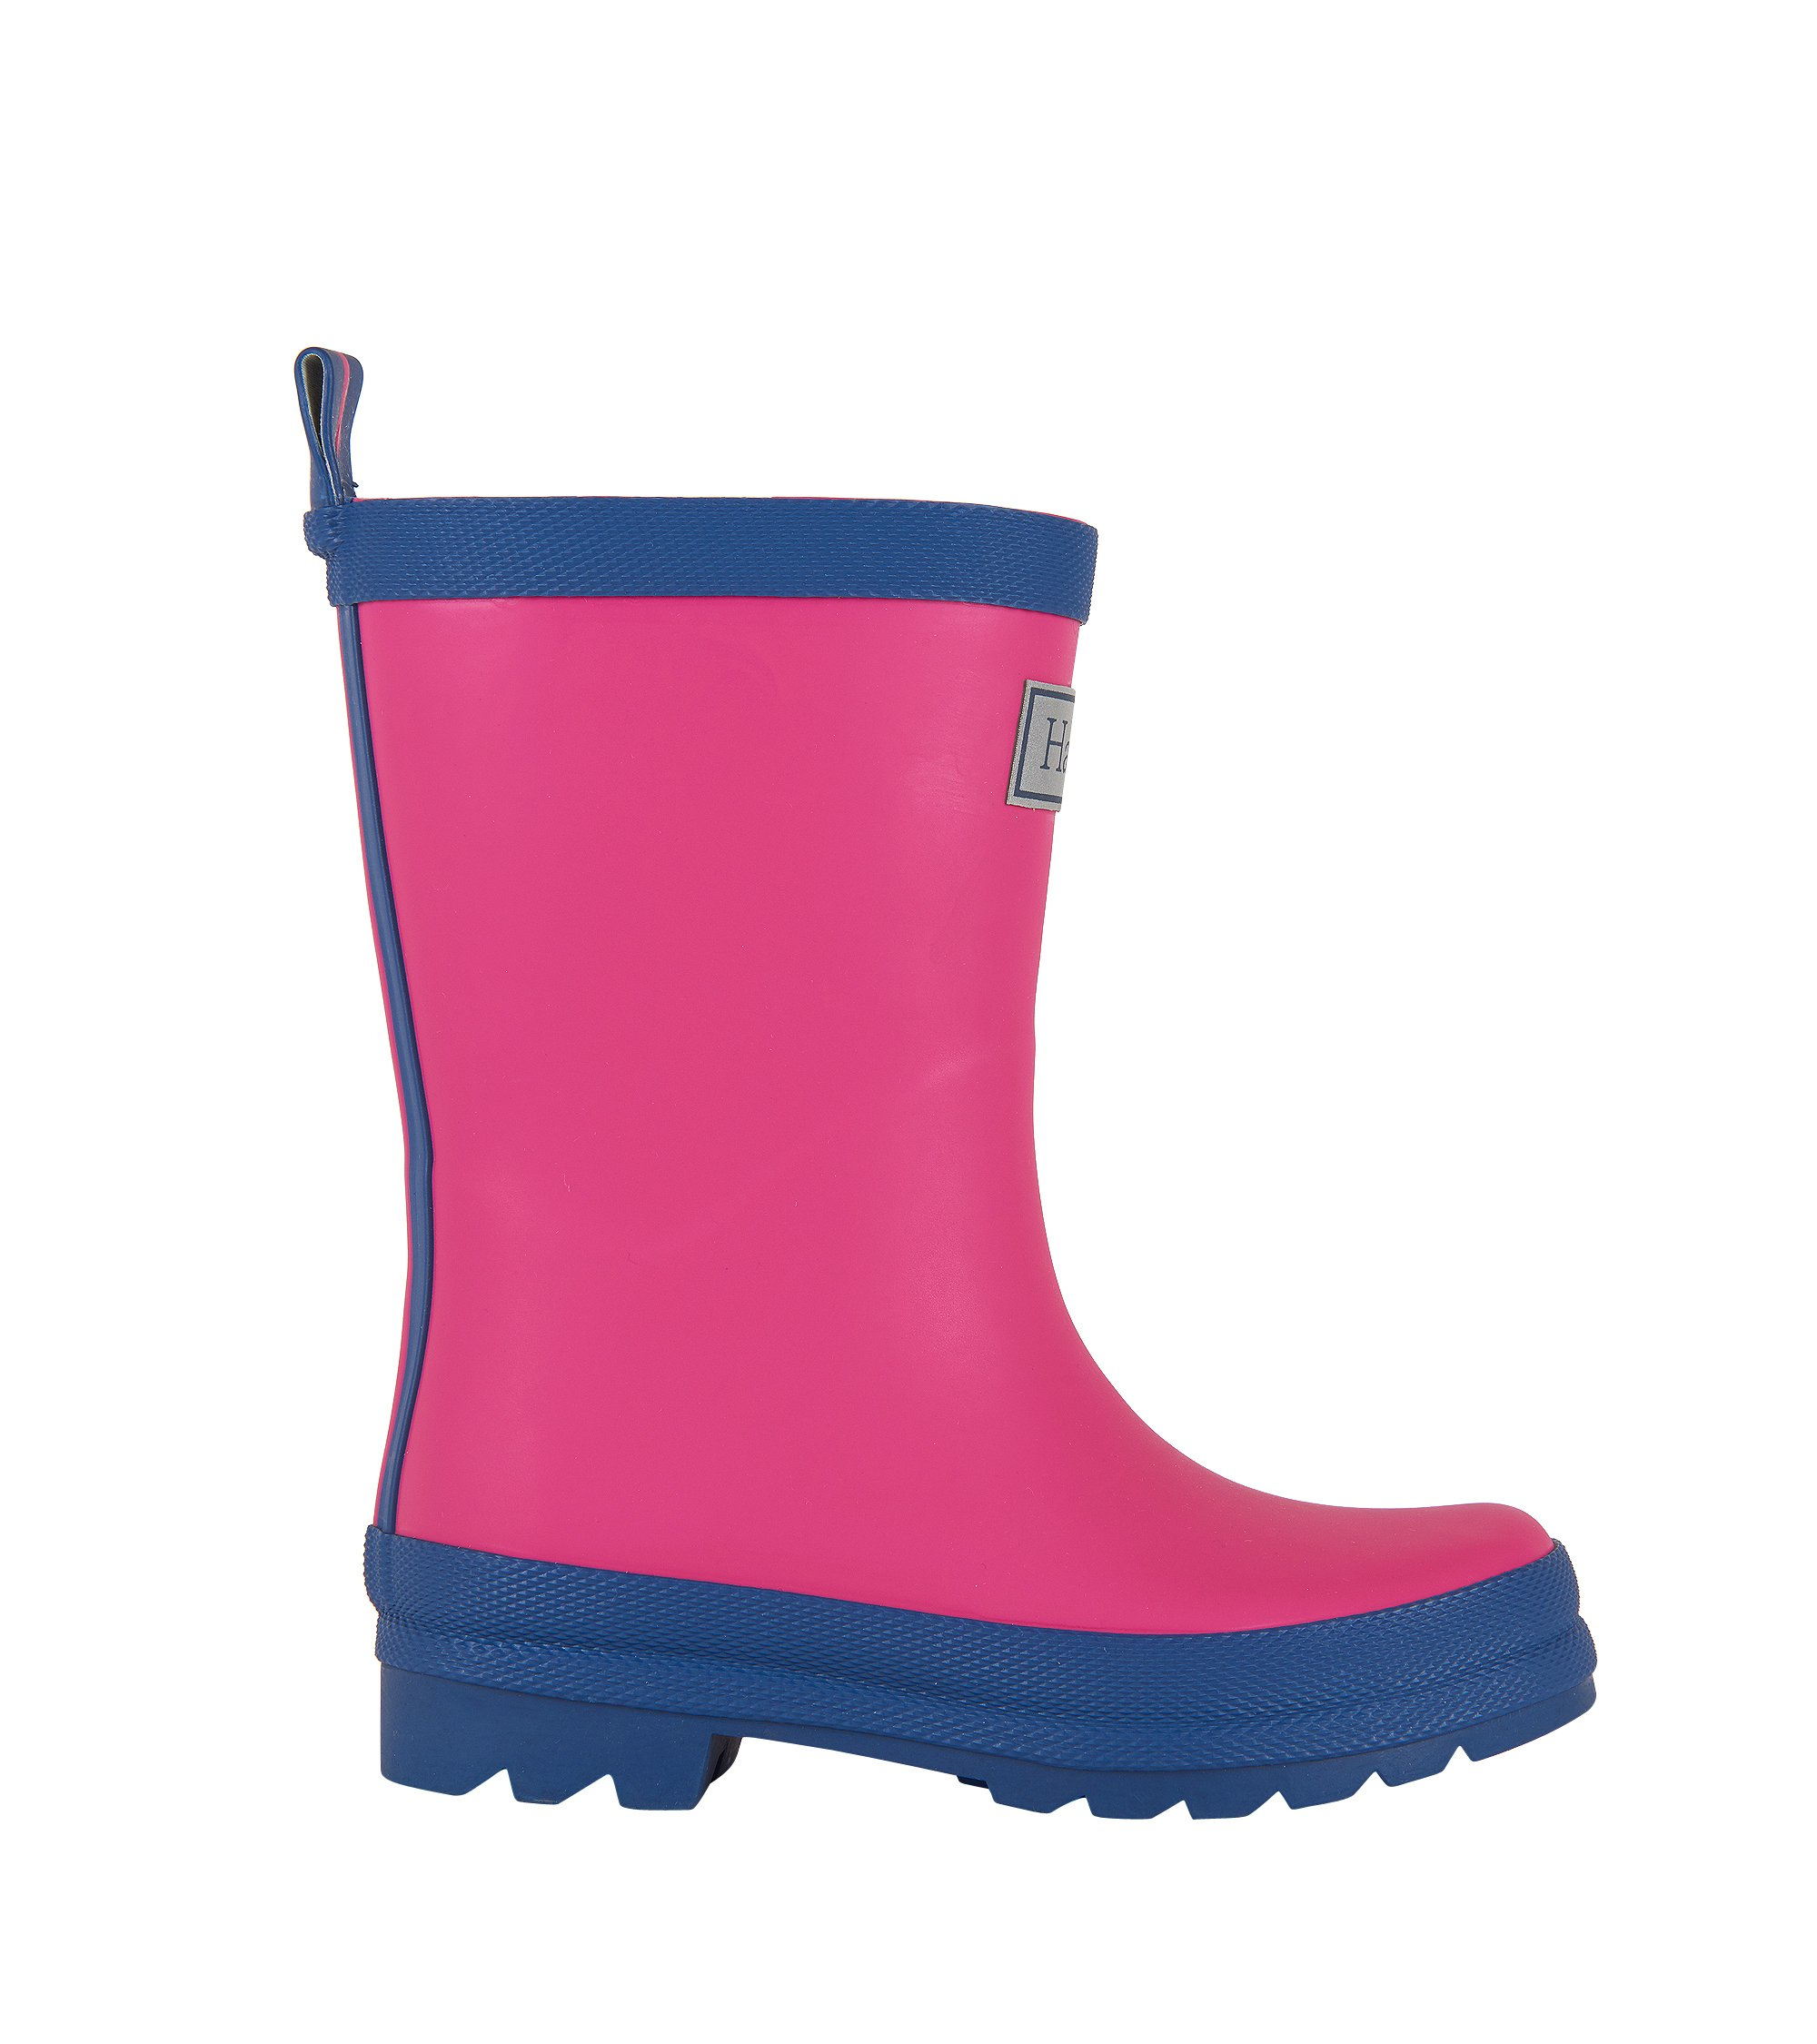 Hatley Kids' Classic Boots Girls Rain Accessory, Fuchsia Navy, 7 M US Toddler by Hatley (Image #7)